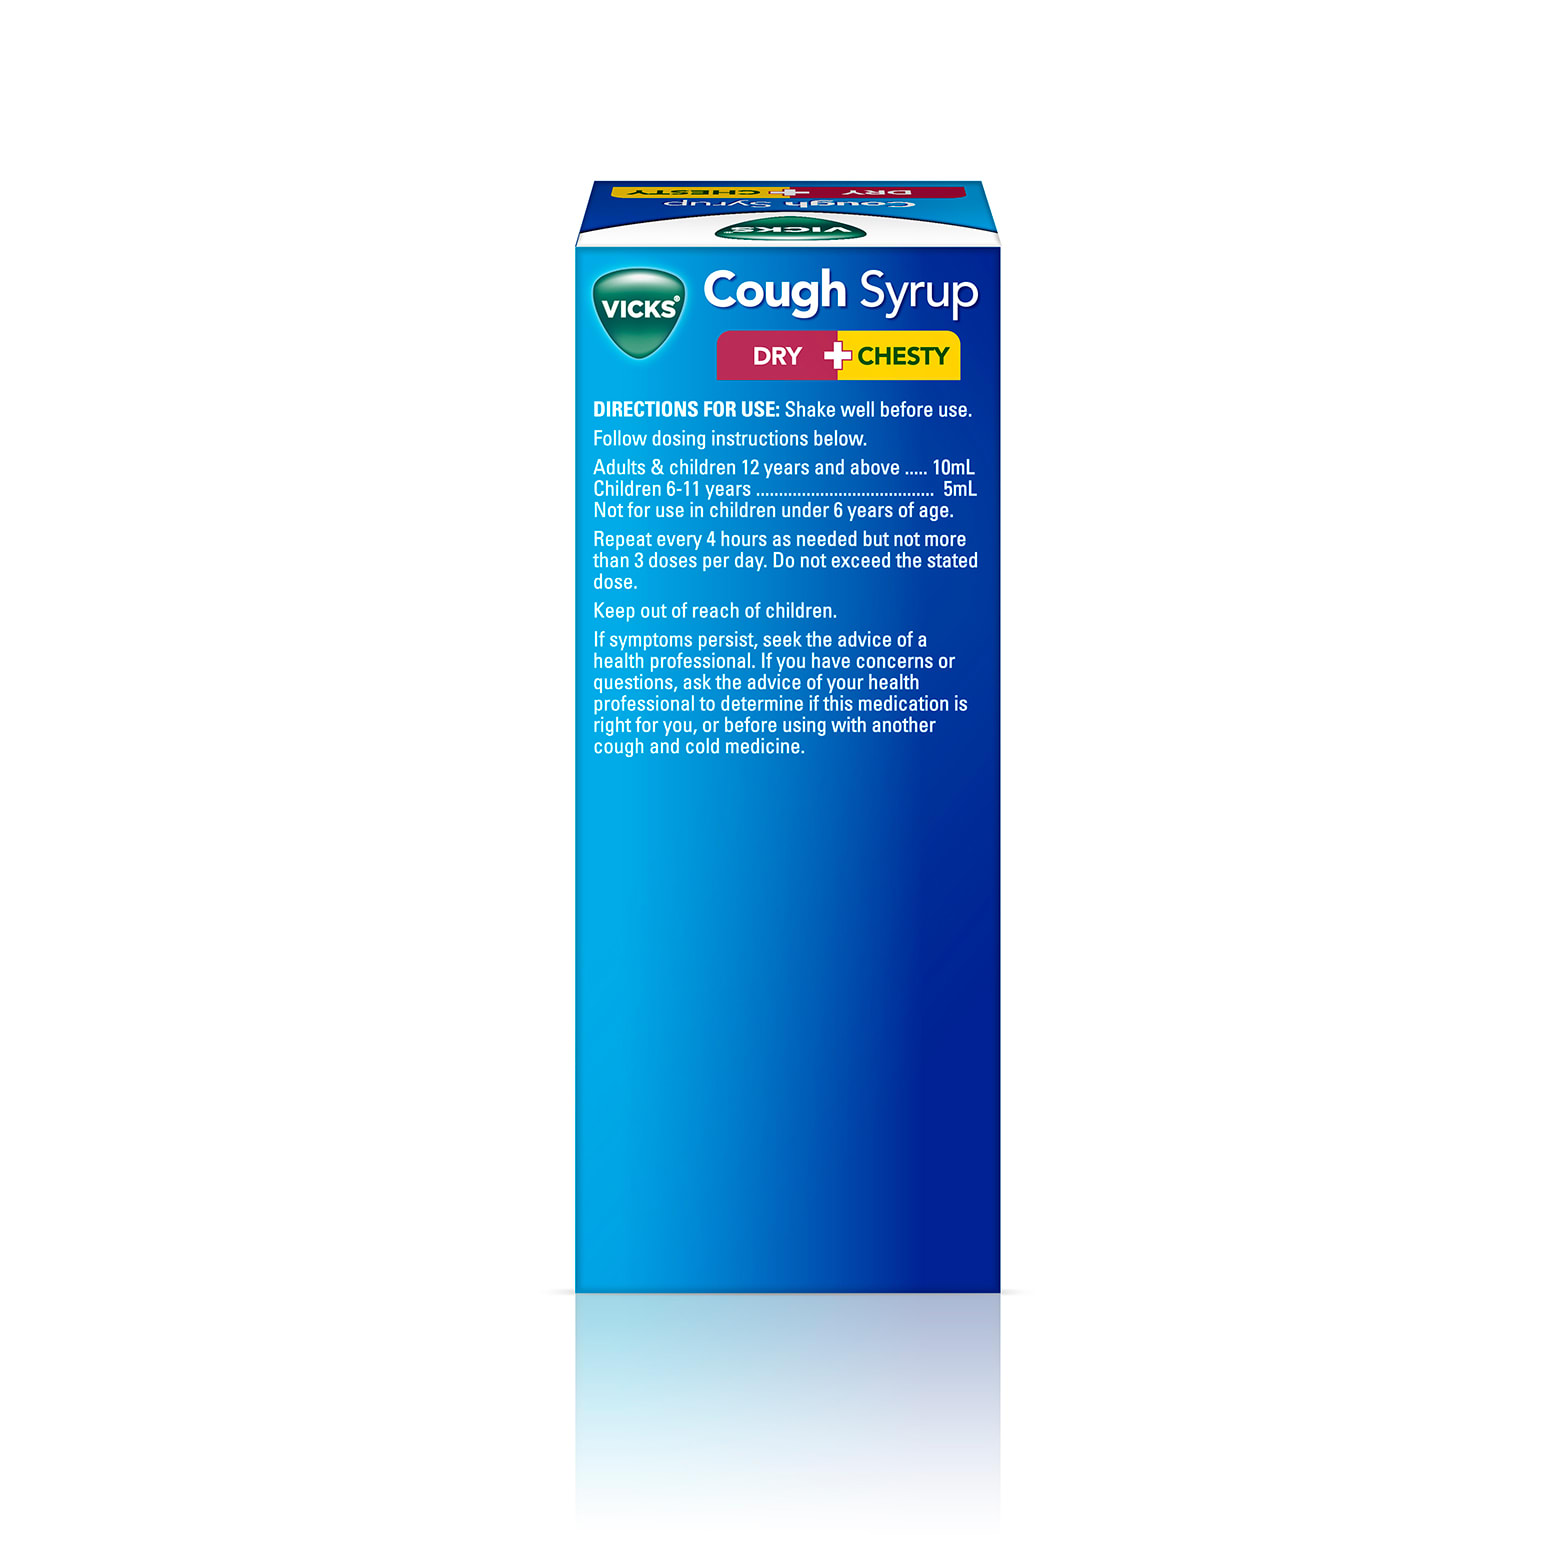 Vicks_AU_Cough_2in1_Syrup_1550x1550_Back